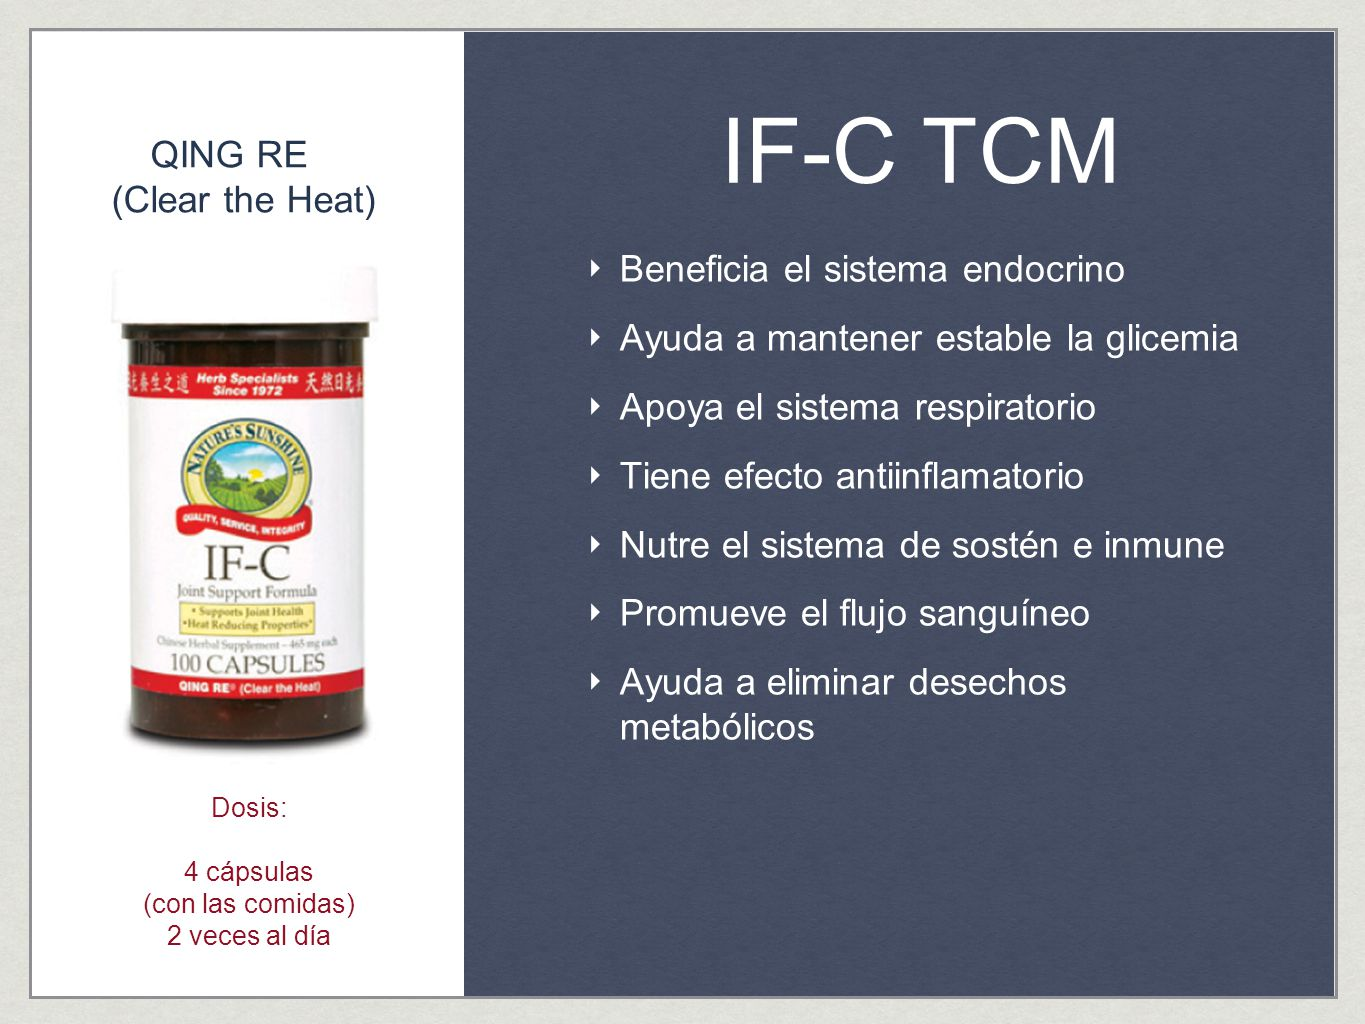 IF-C TCM QING RE (Clear the Heat) Beneficia el sistema endocrino